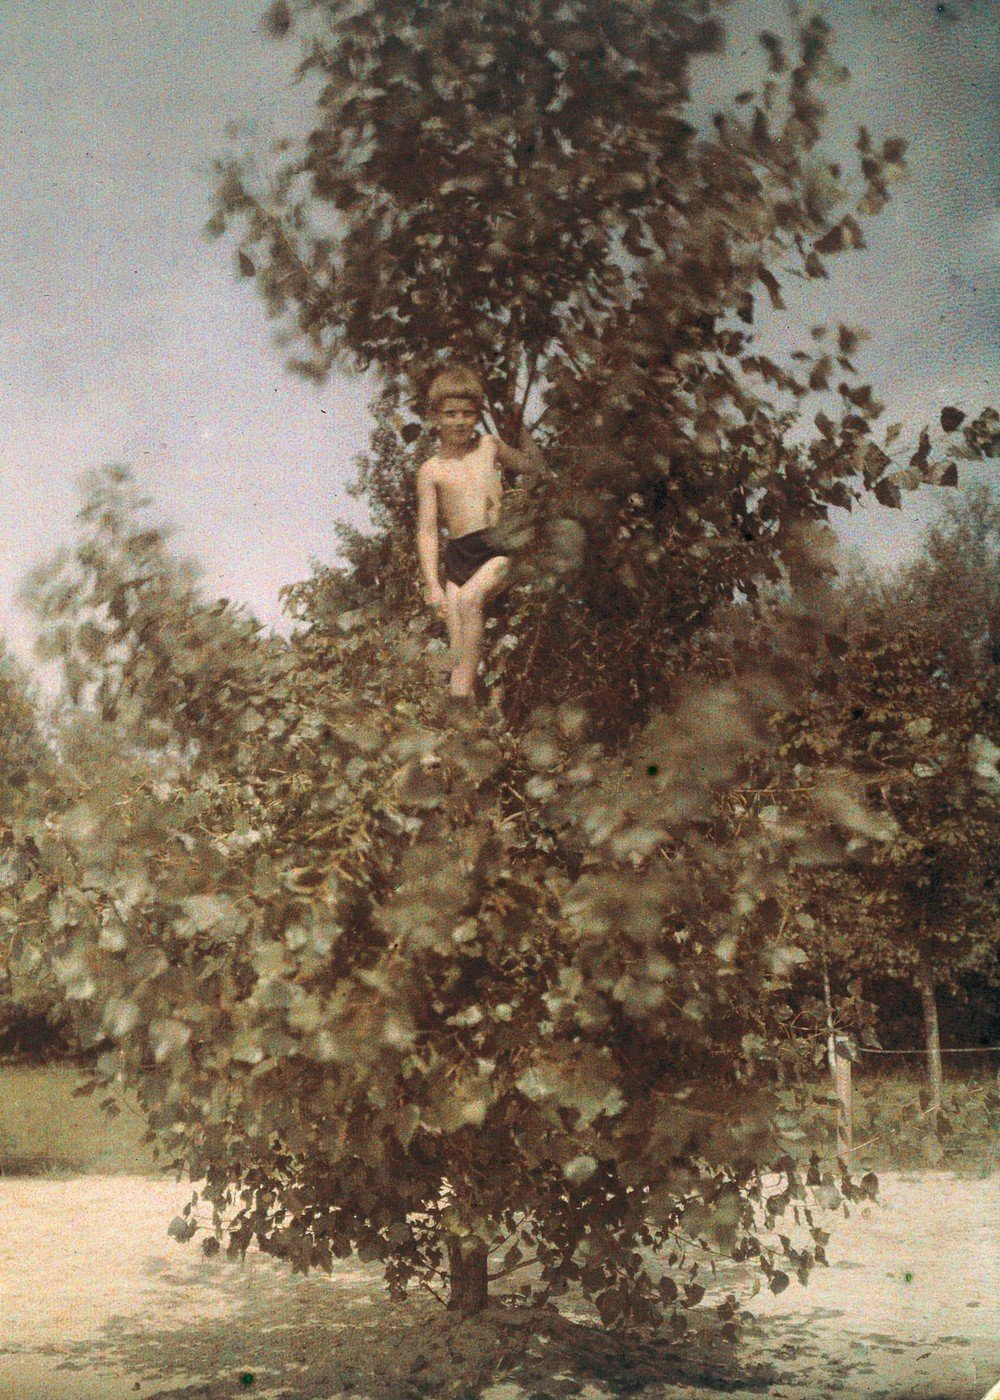 Boy in a tree, c 1920.